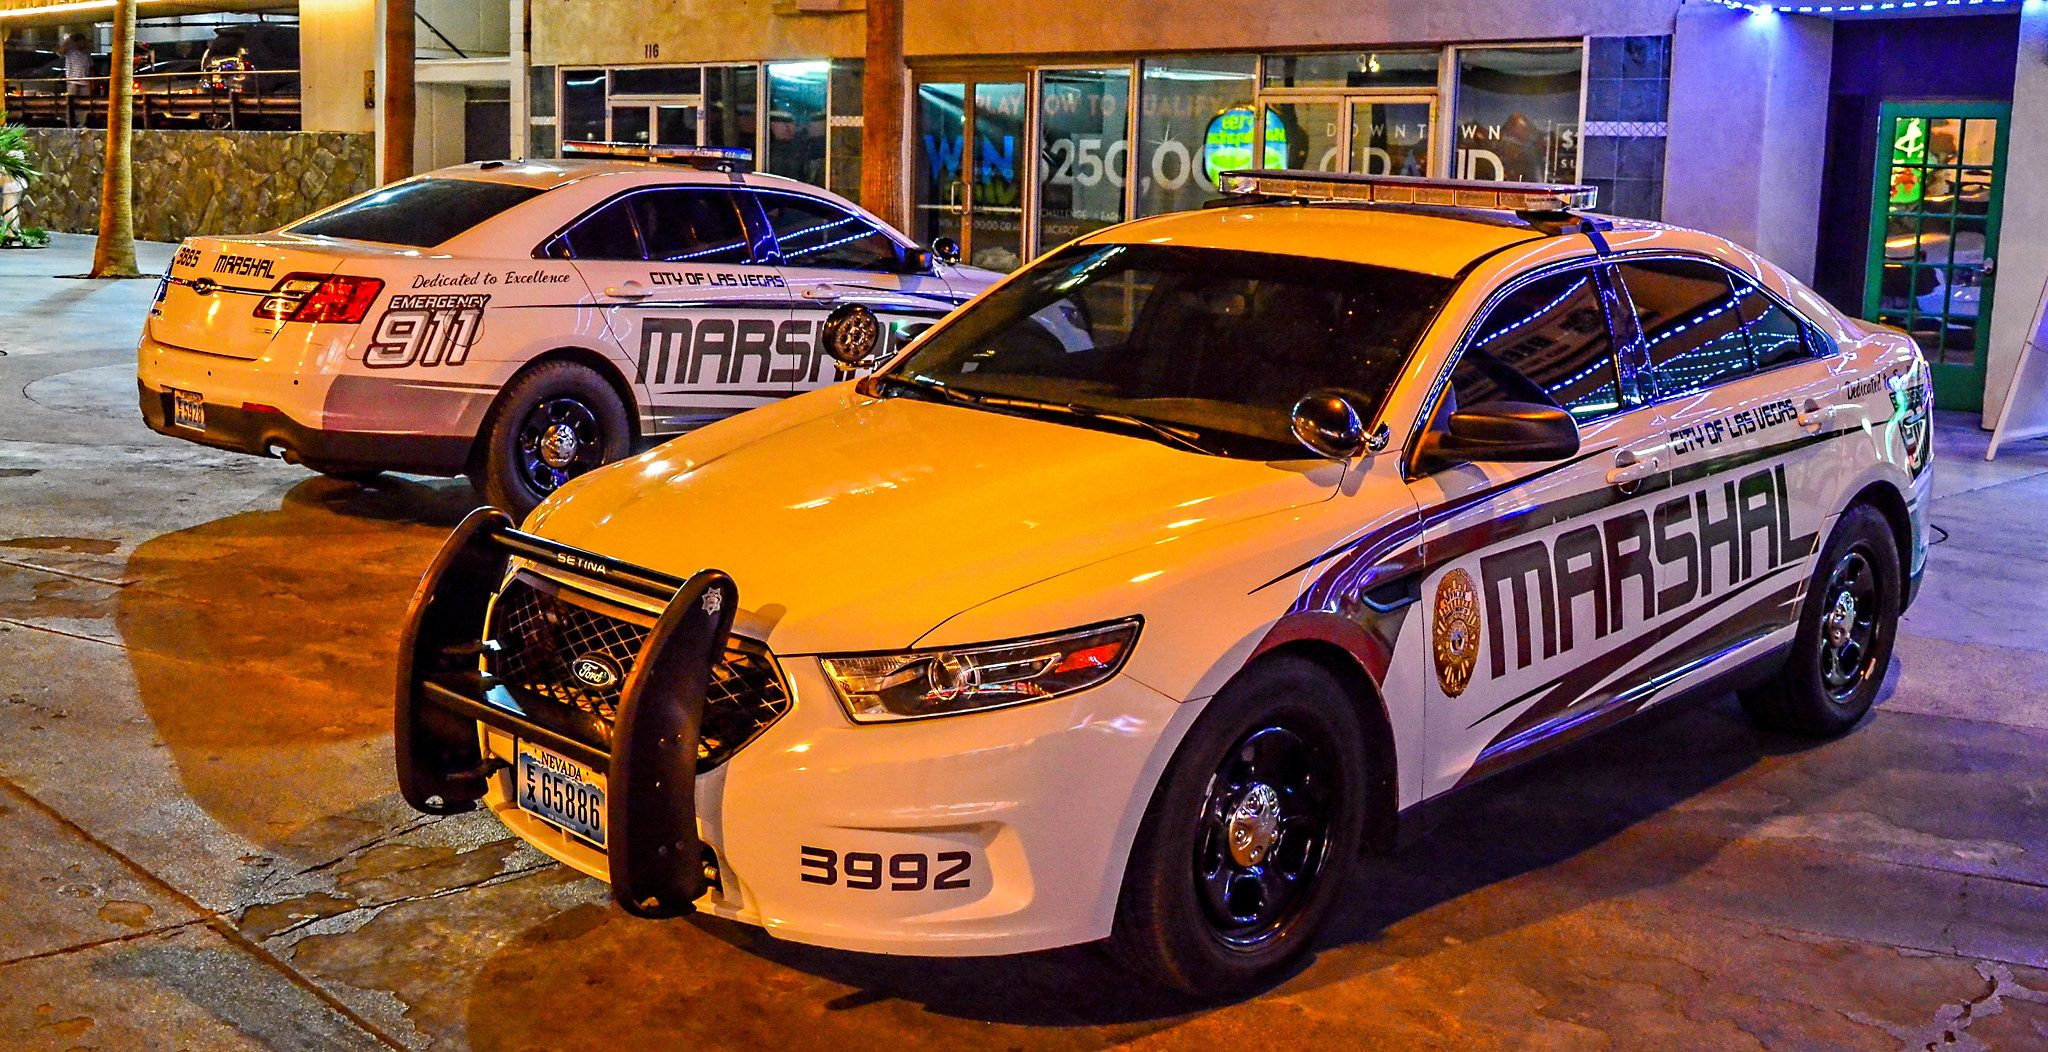 Marshal Officer Department Of Detention And Enforcement City Of Las Vegas Nevada Police Cars Las Vegas City Emergency Vehicles